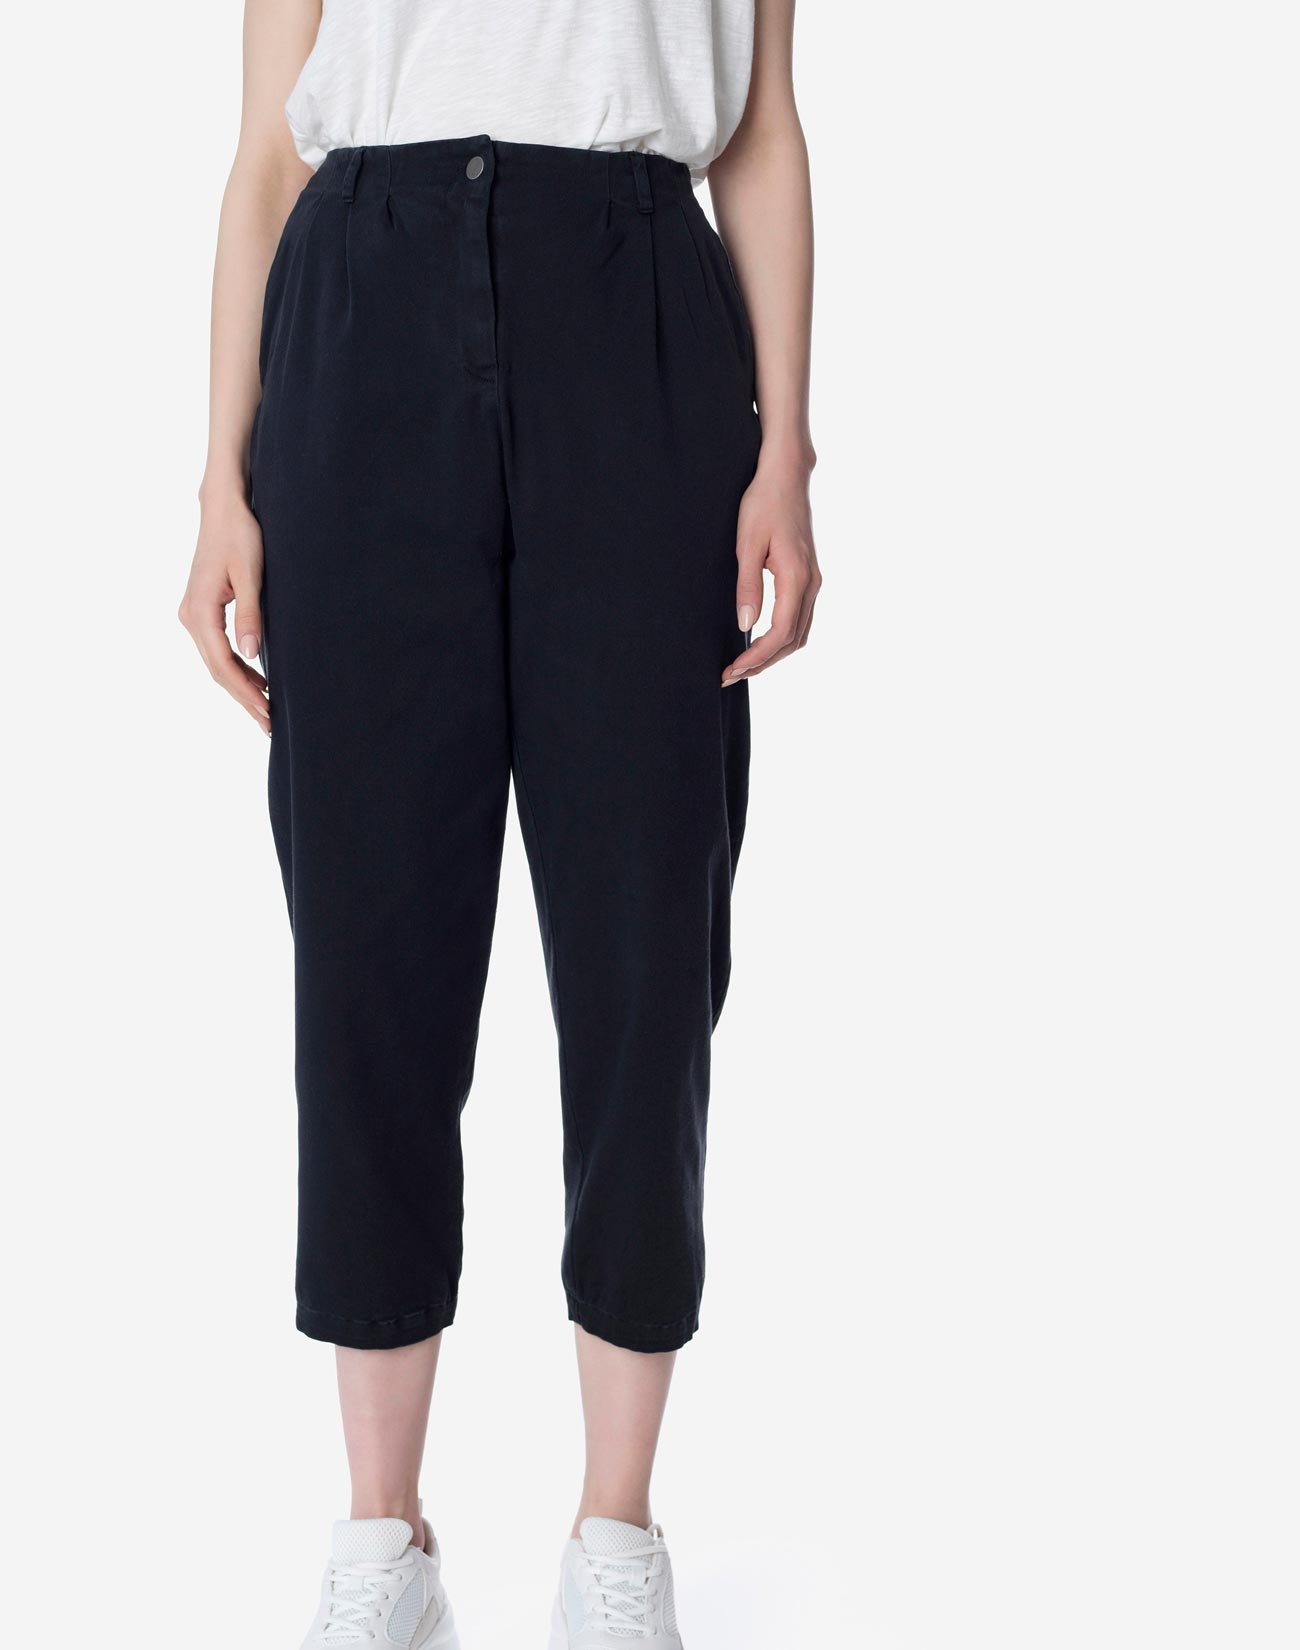 High-waist baggy trousers